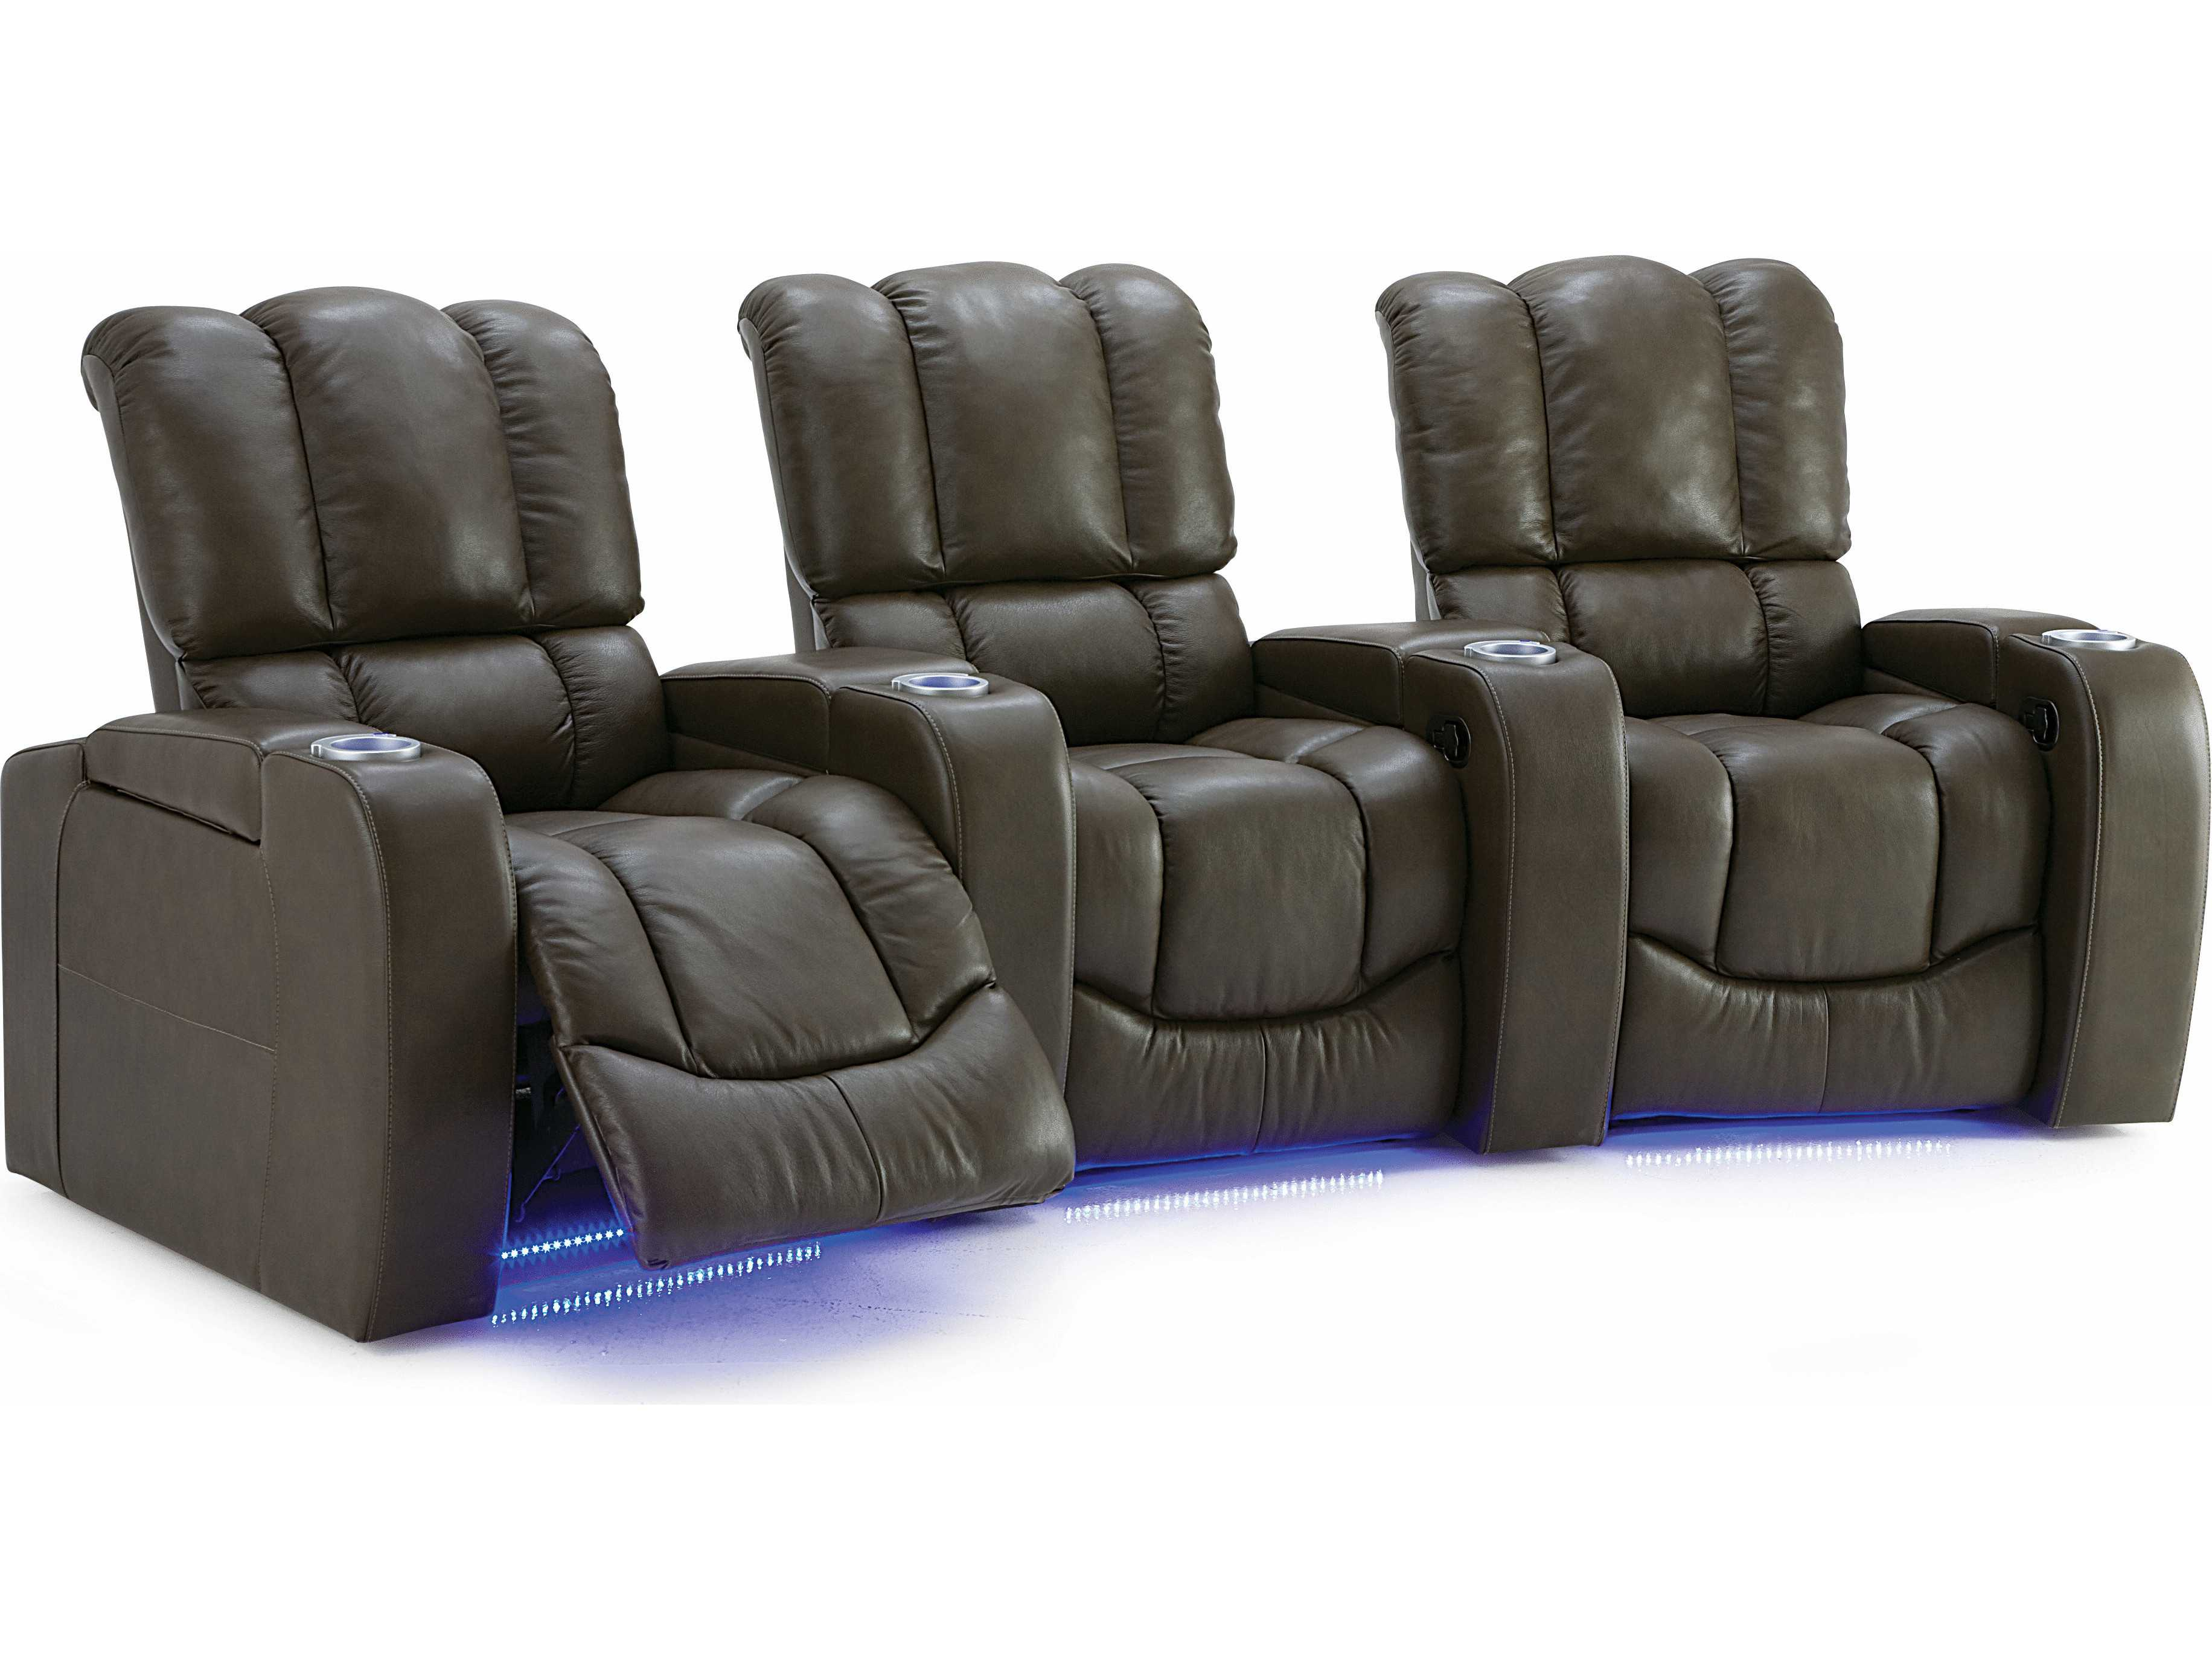 Palliser Channel Hts Manual Reclining Home Theater Sectional 4 Seats Straight With Loveseat